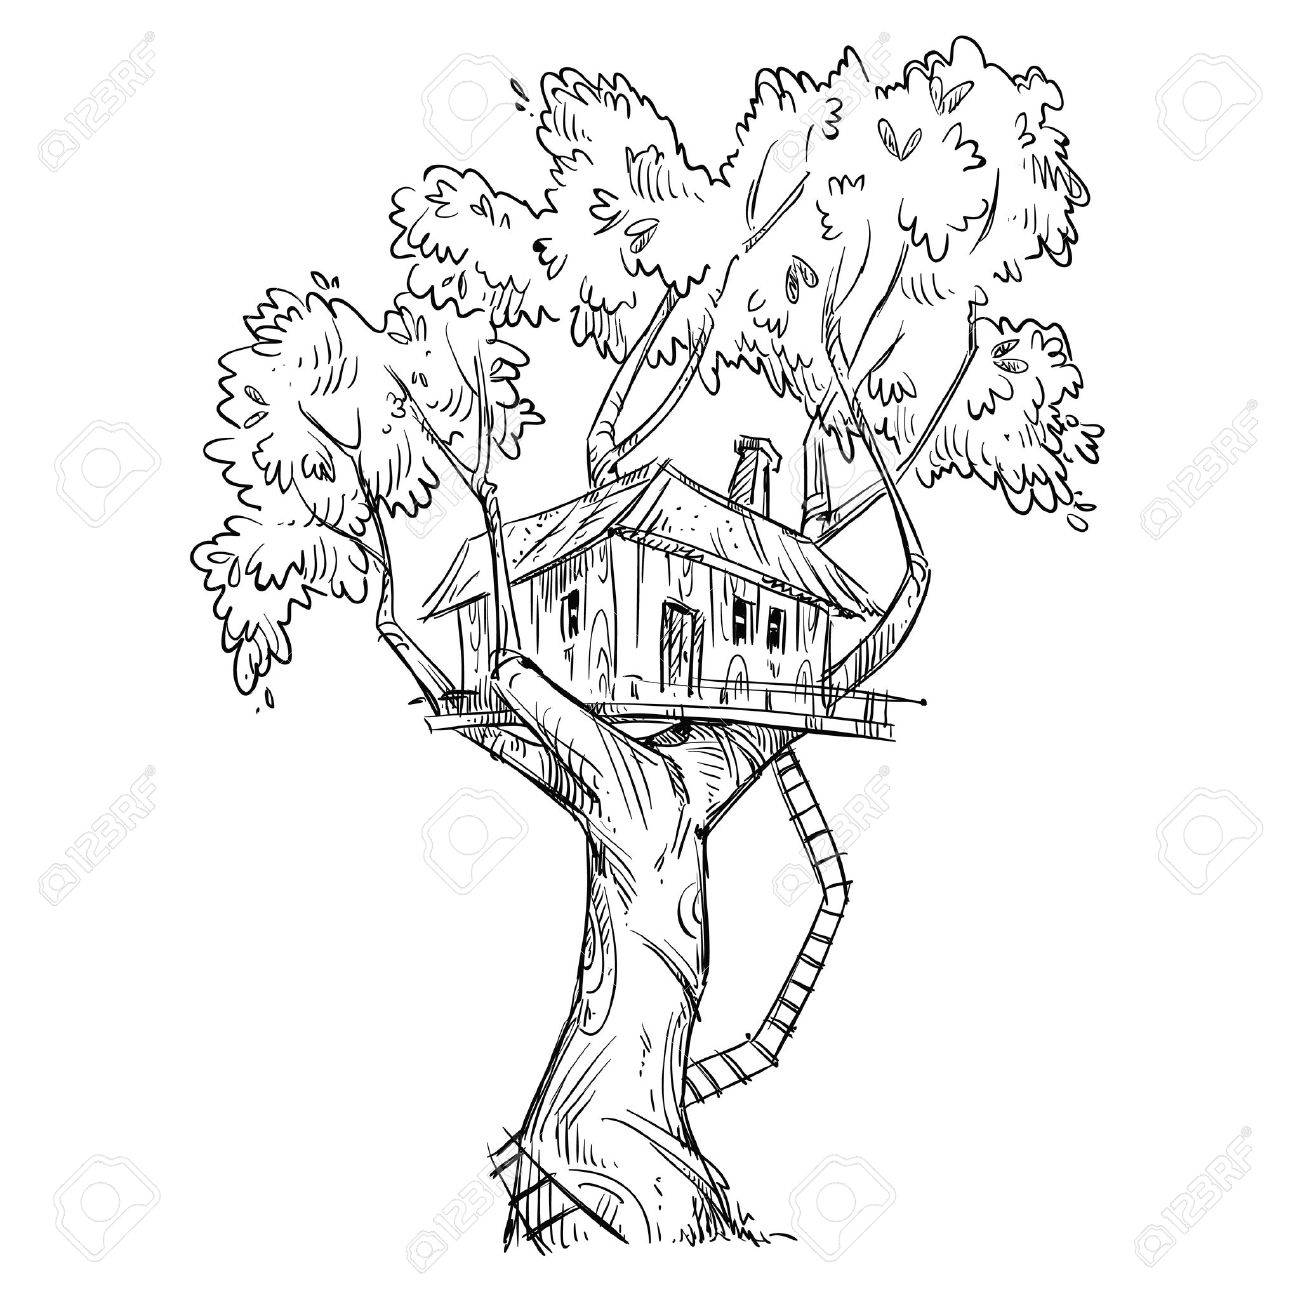 389 treehouse stock vector illustration and royalty free treehouse